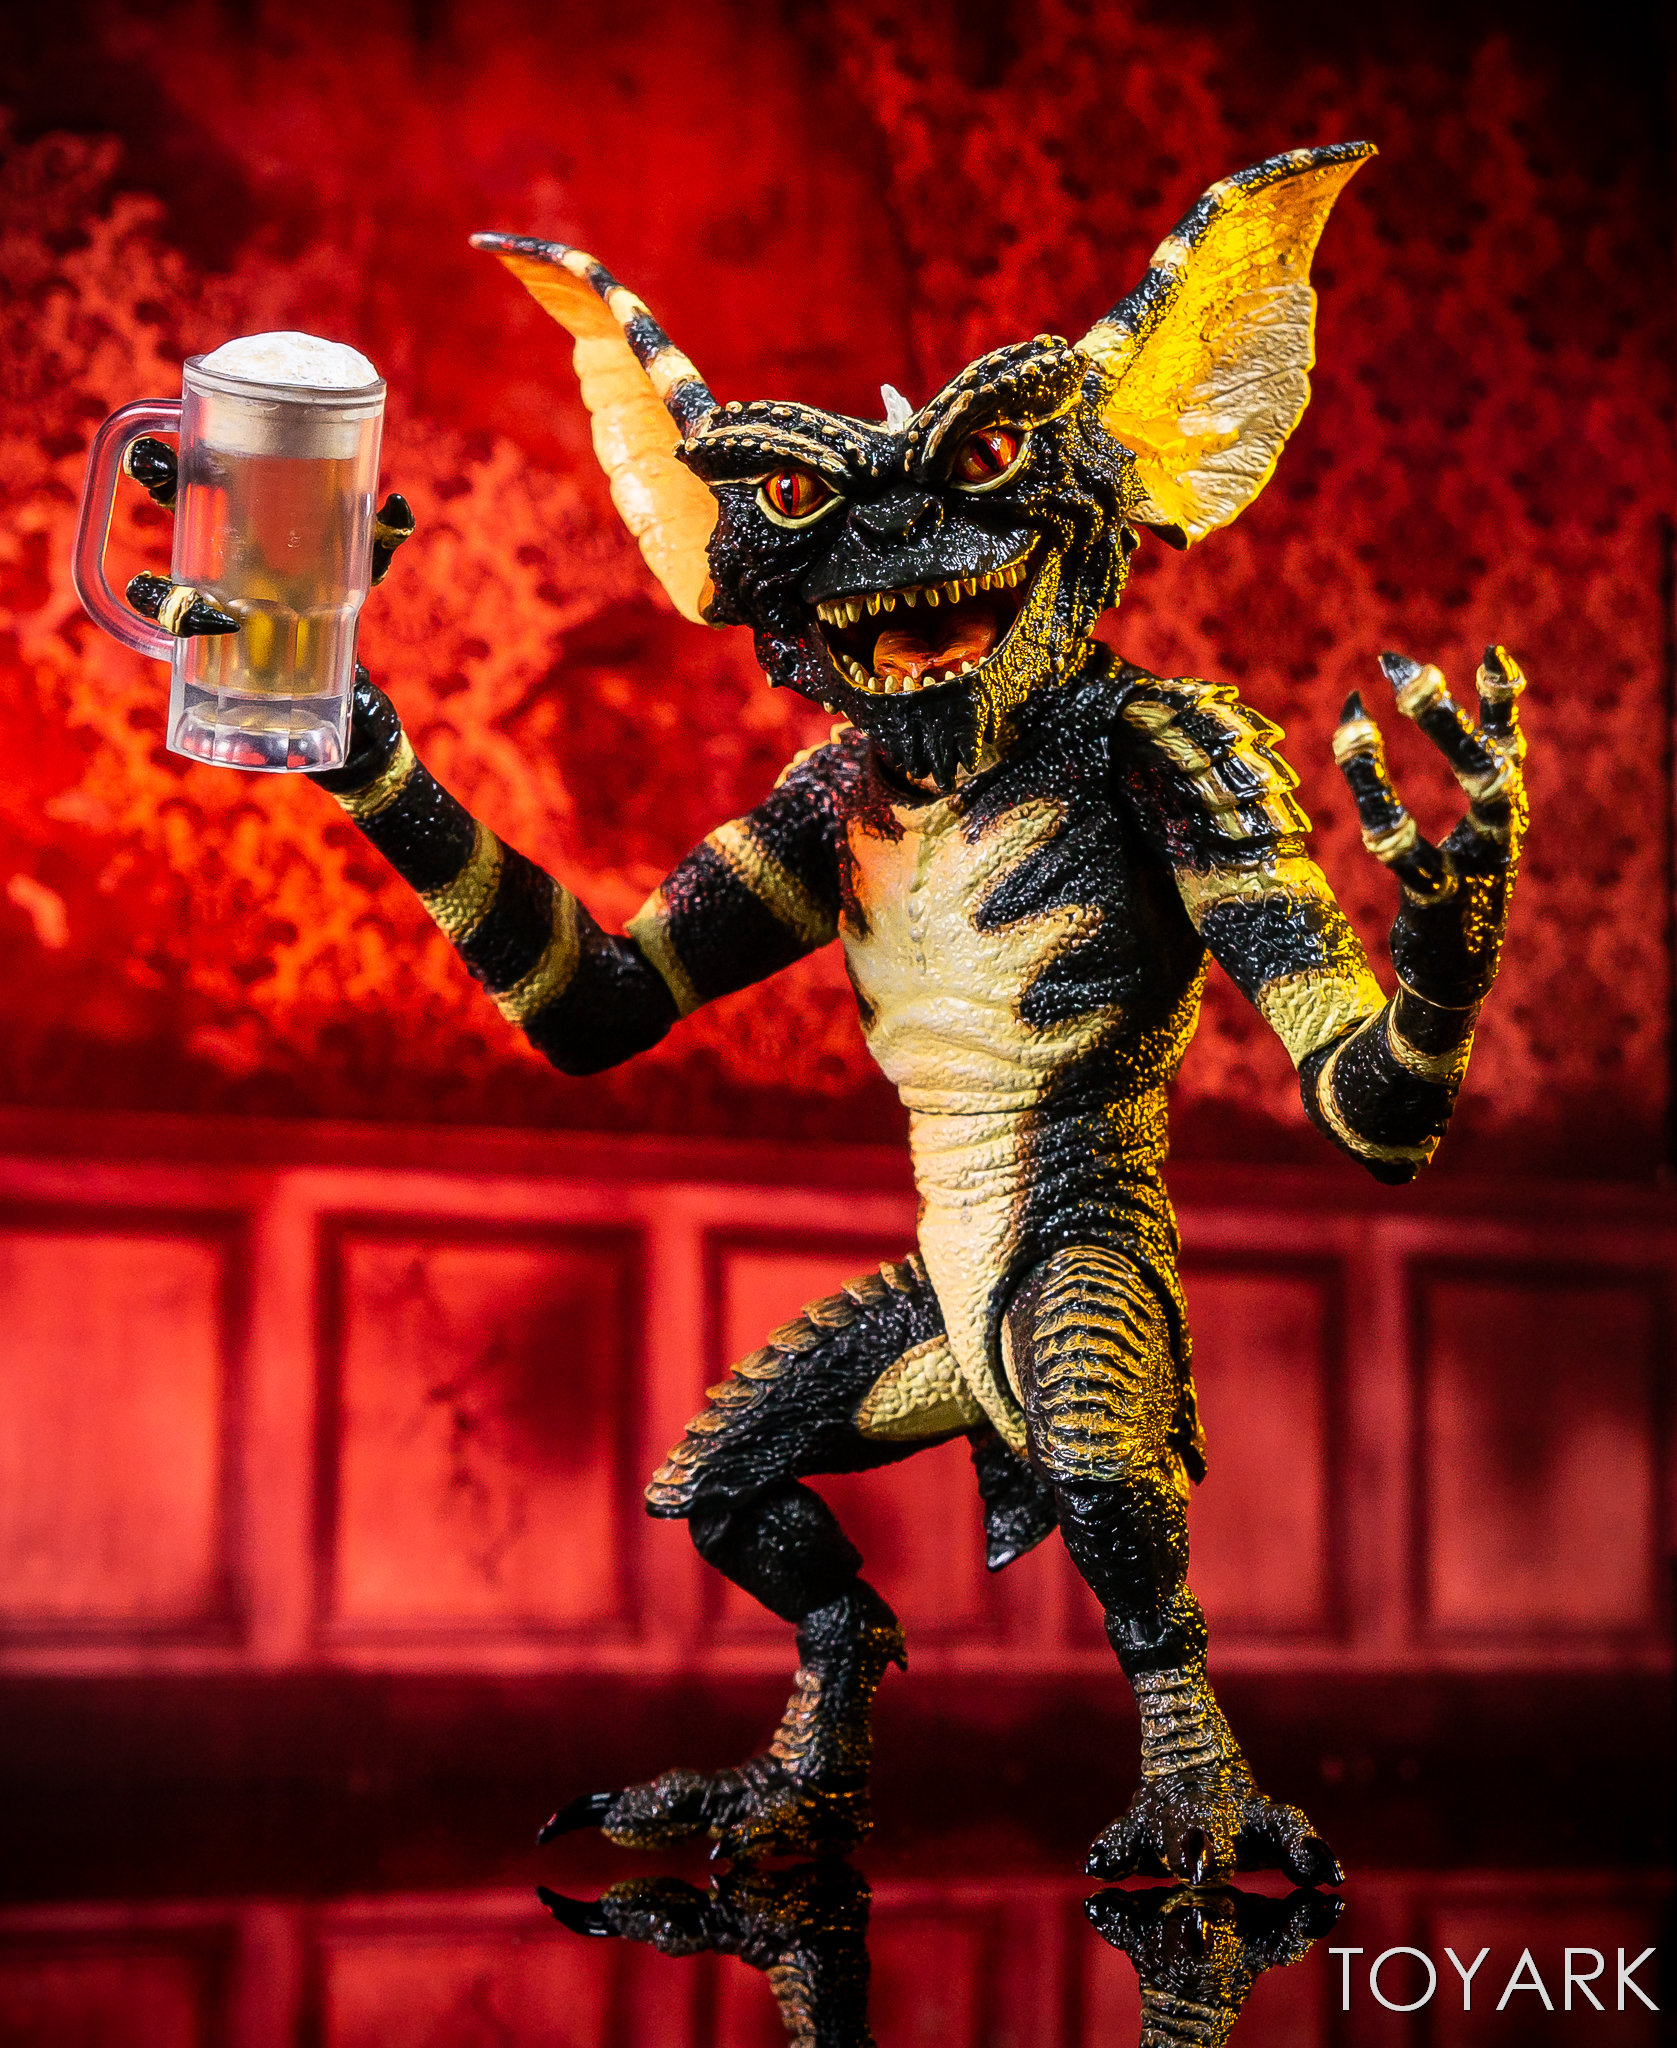 https://news.toyark.com/wp-content/uploads/sites/4/2018/11/Ultimate-NECA-Gremlin-Figure-032.jpg